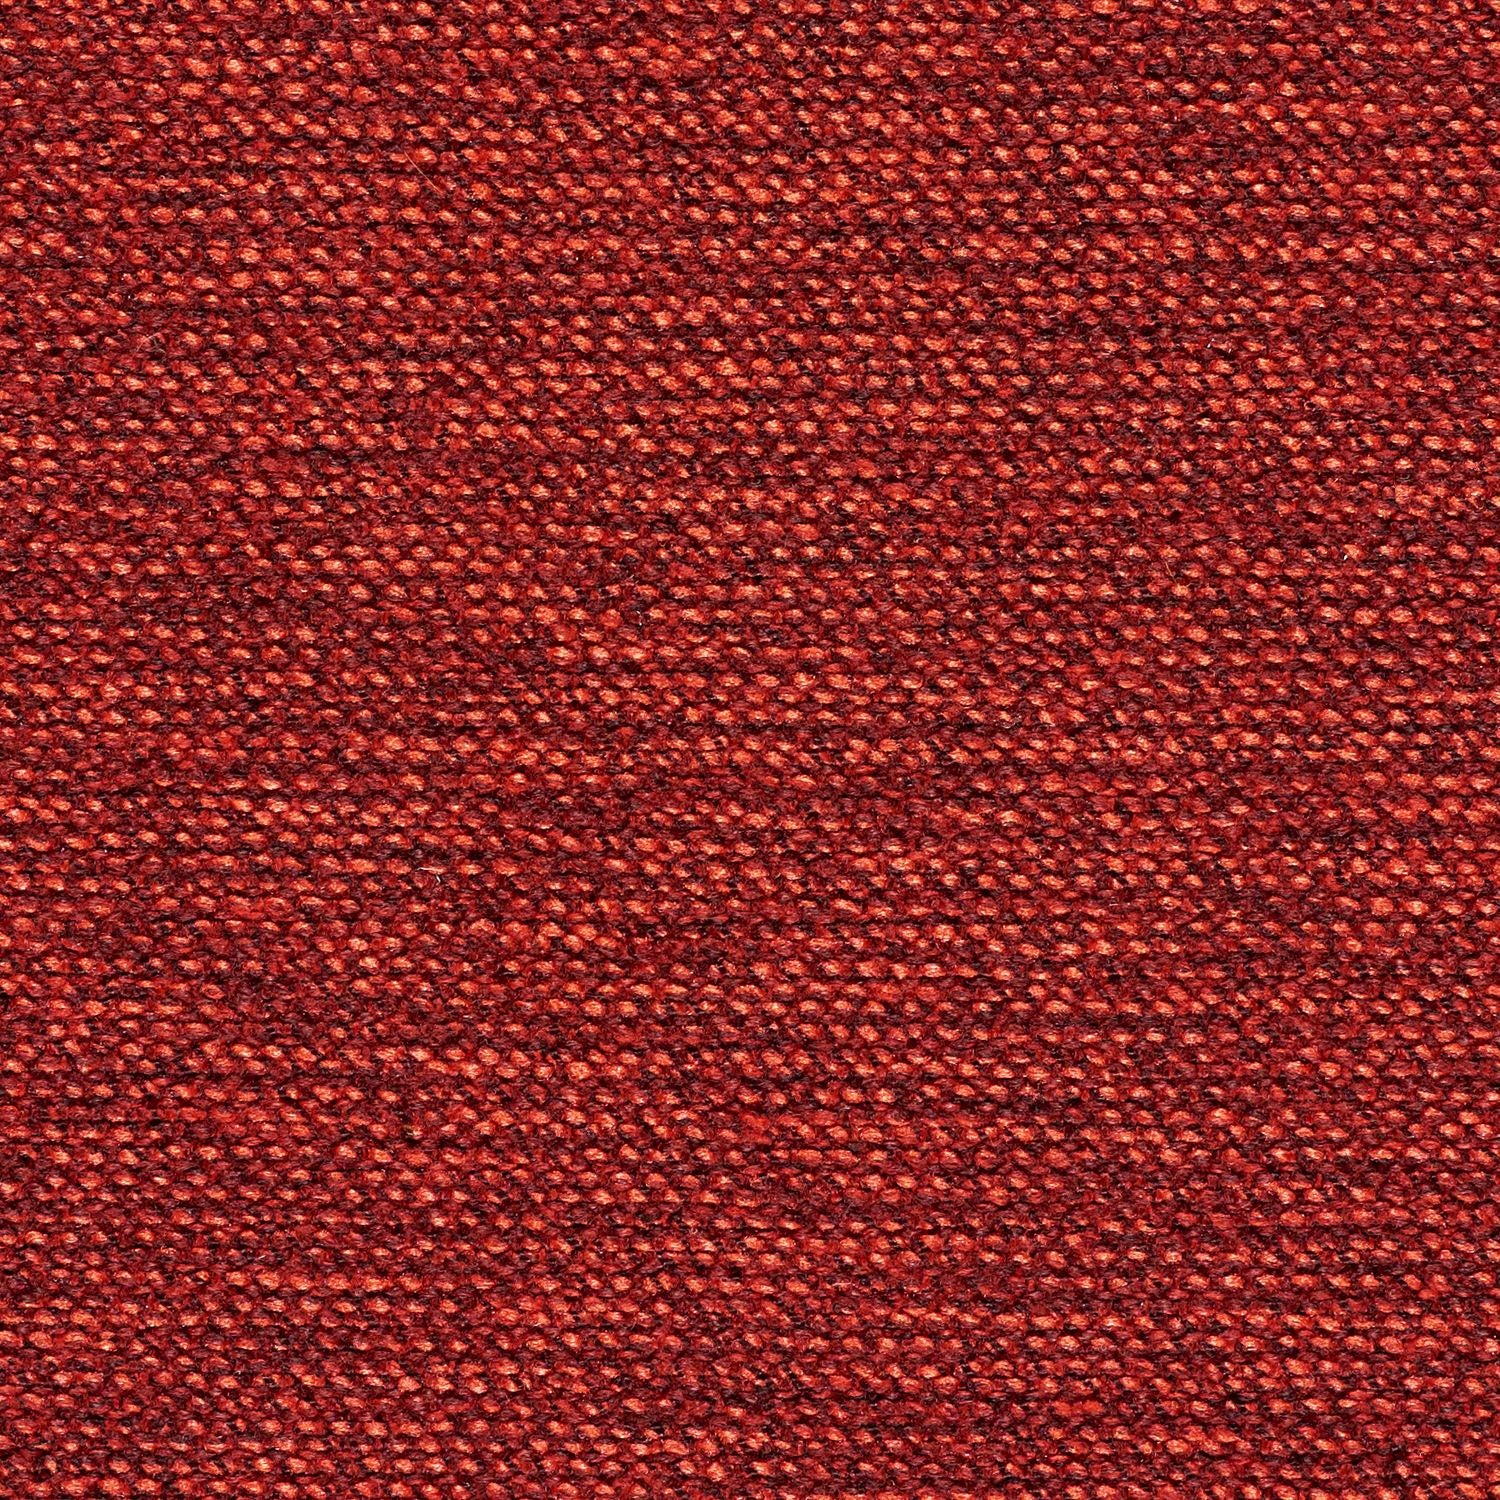 Superspun - Red Cast - 4064 - 09